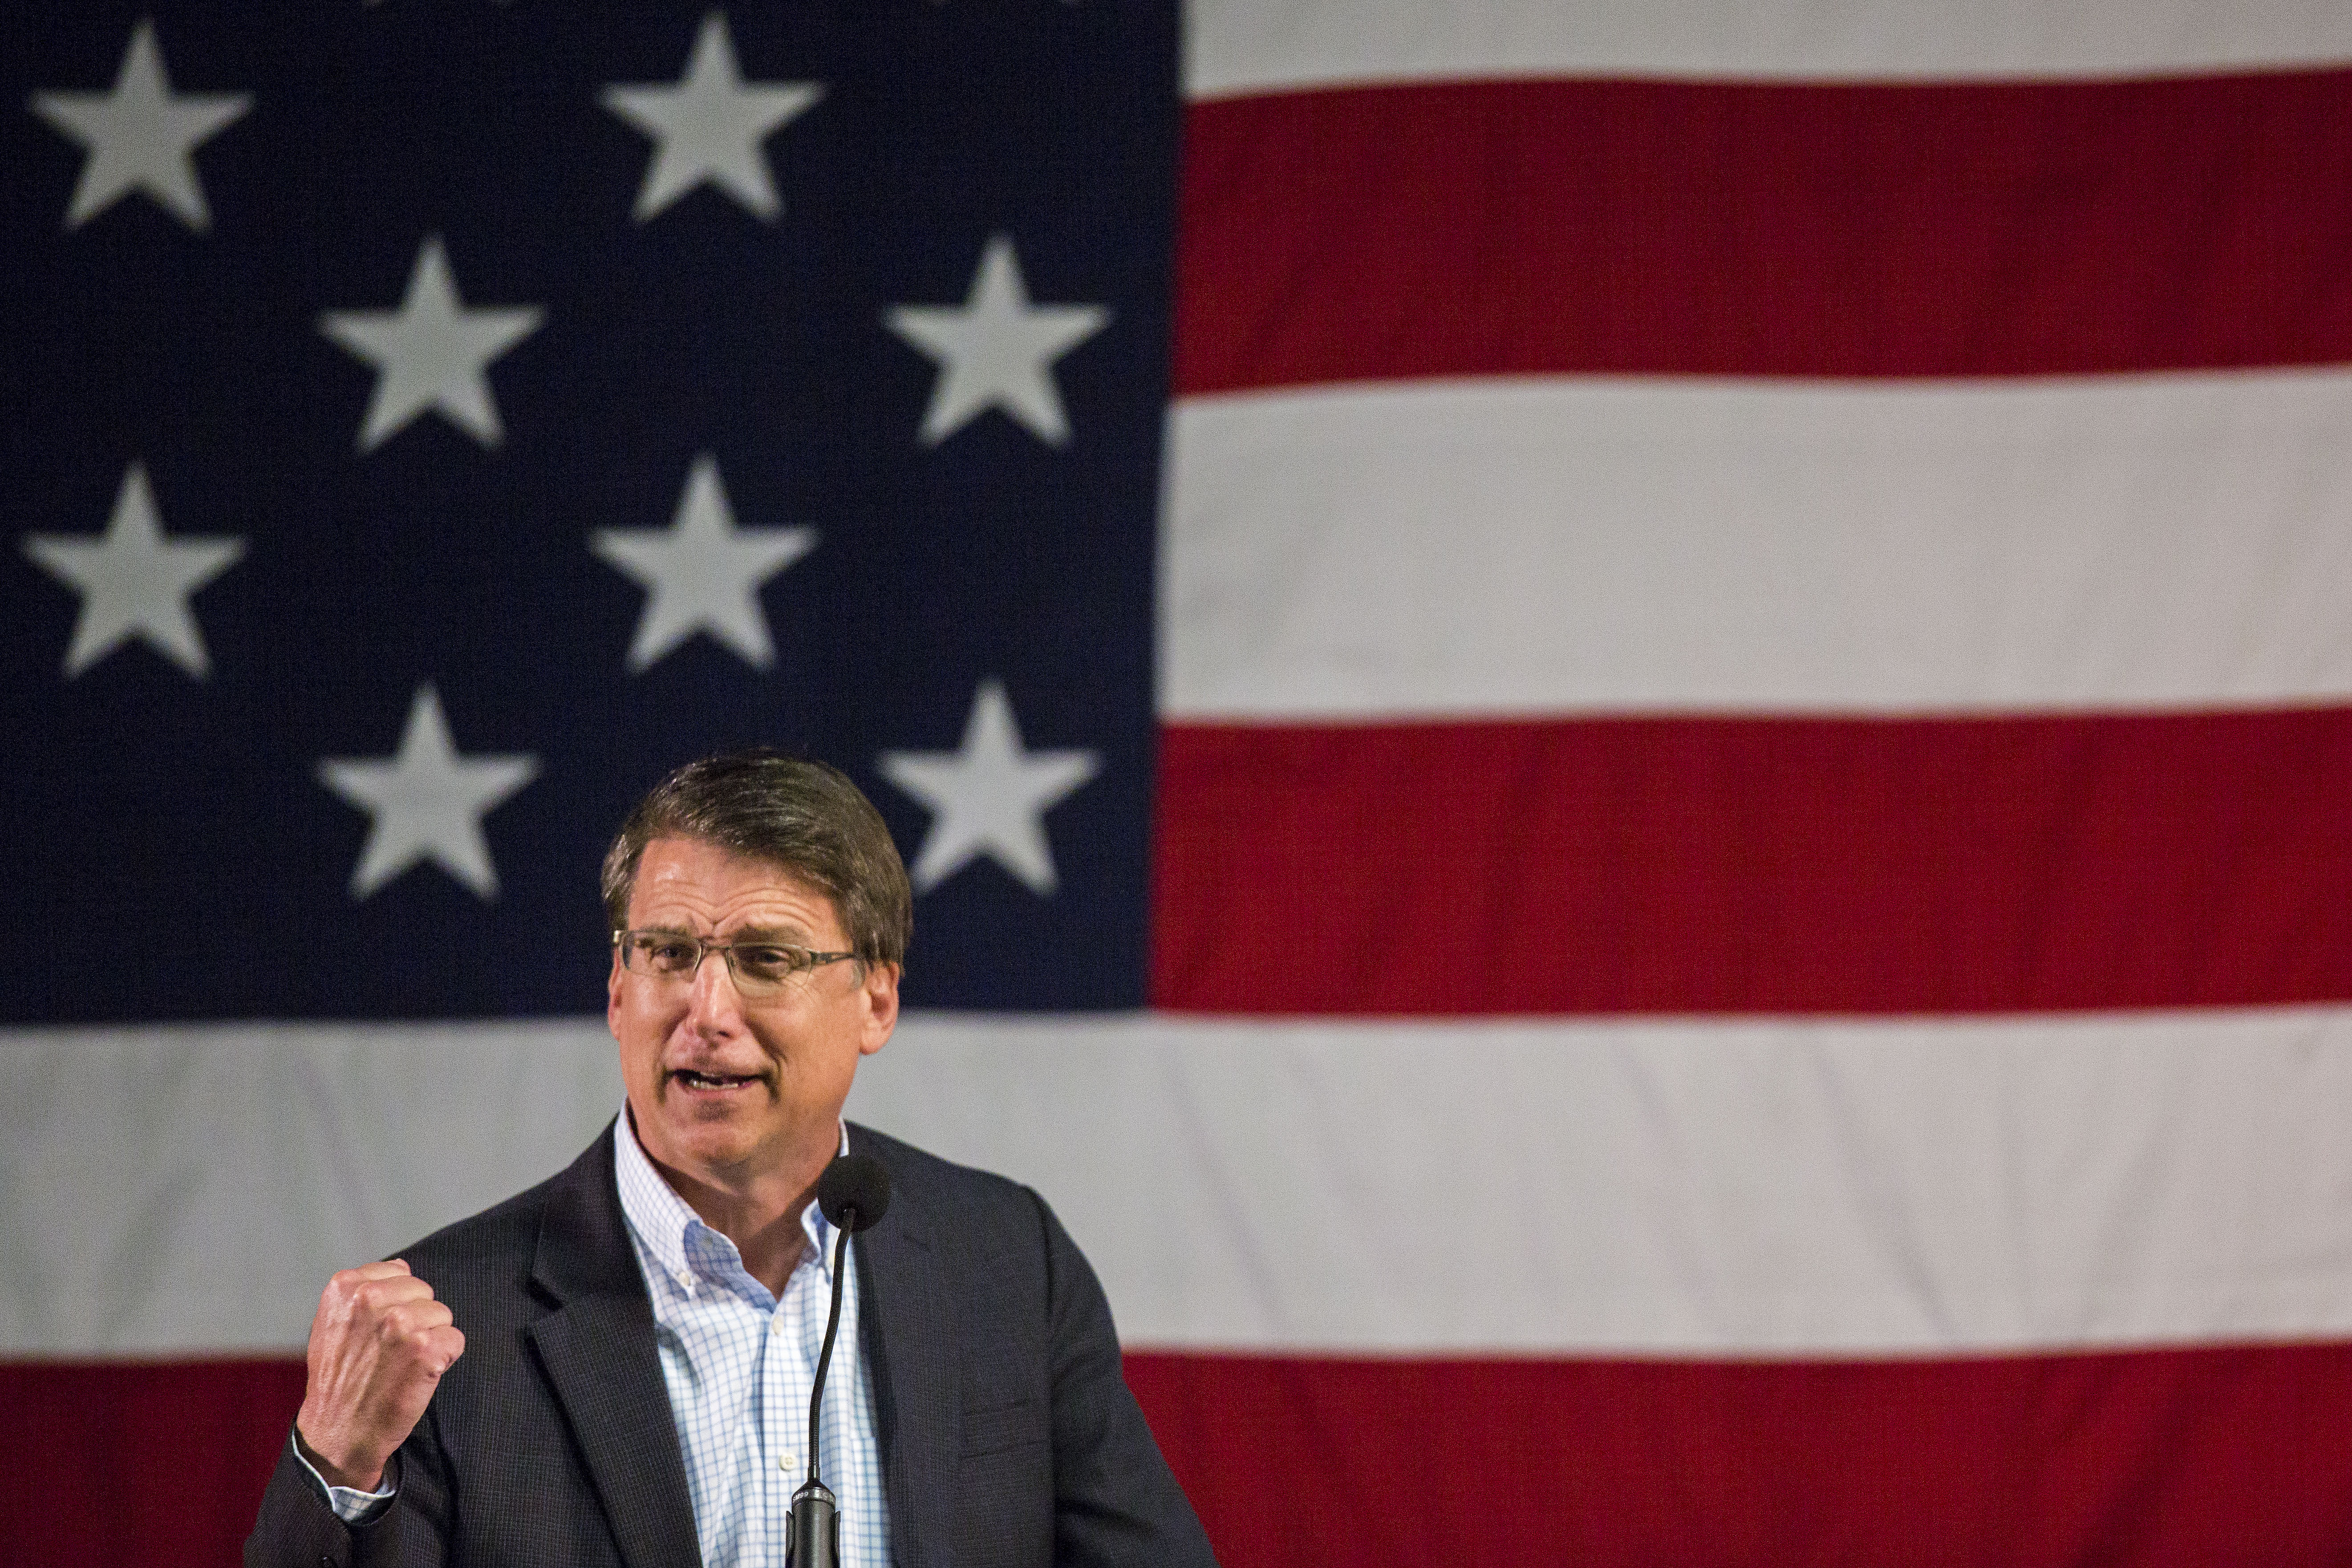 North Carolina Gov. Pat McCrory speaks at the Wake County Republican Party 2016 County Convention at the N.C. State Fairgrounds, in Raleigh, N.C. on March 8, 2016.